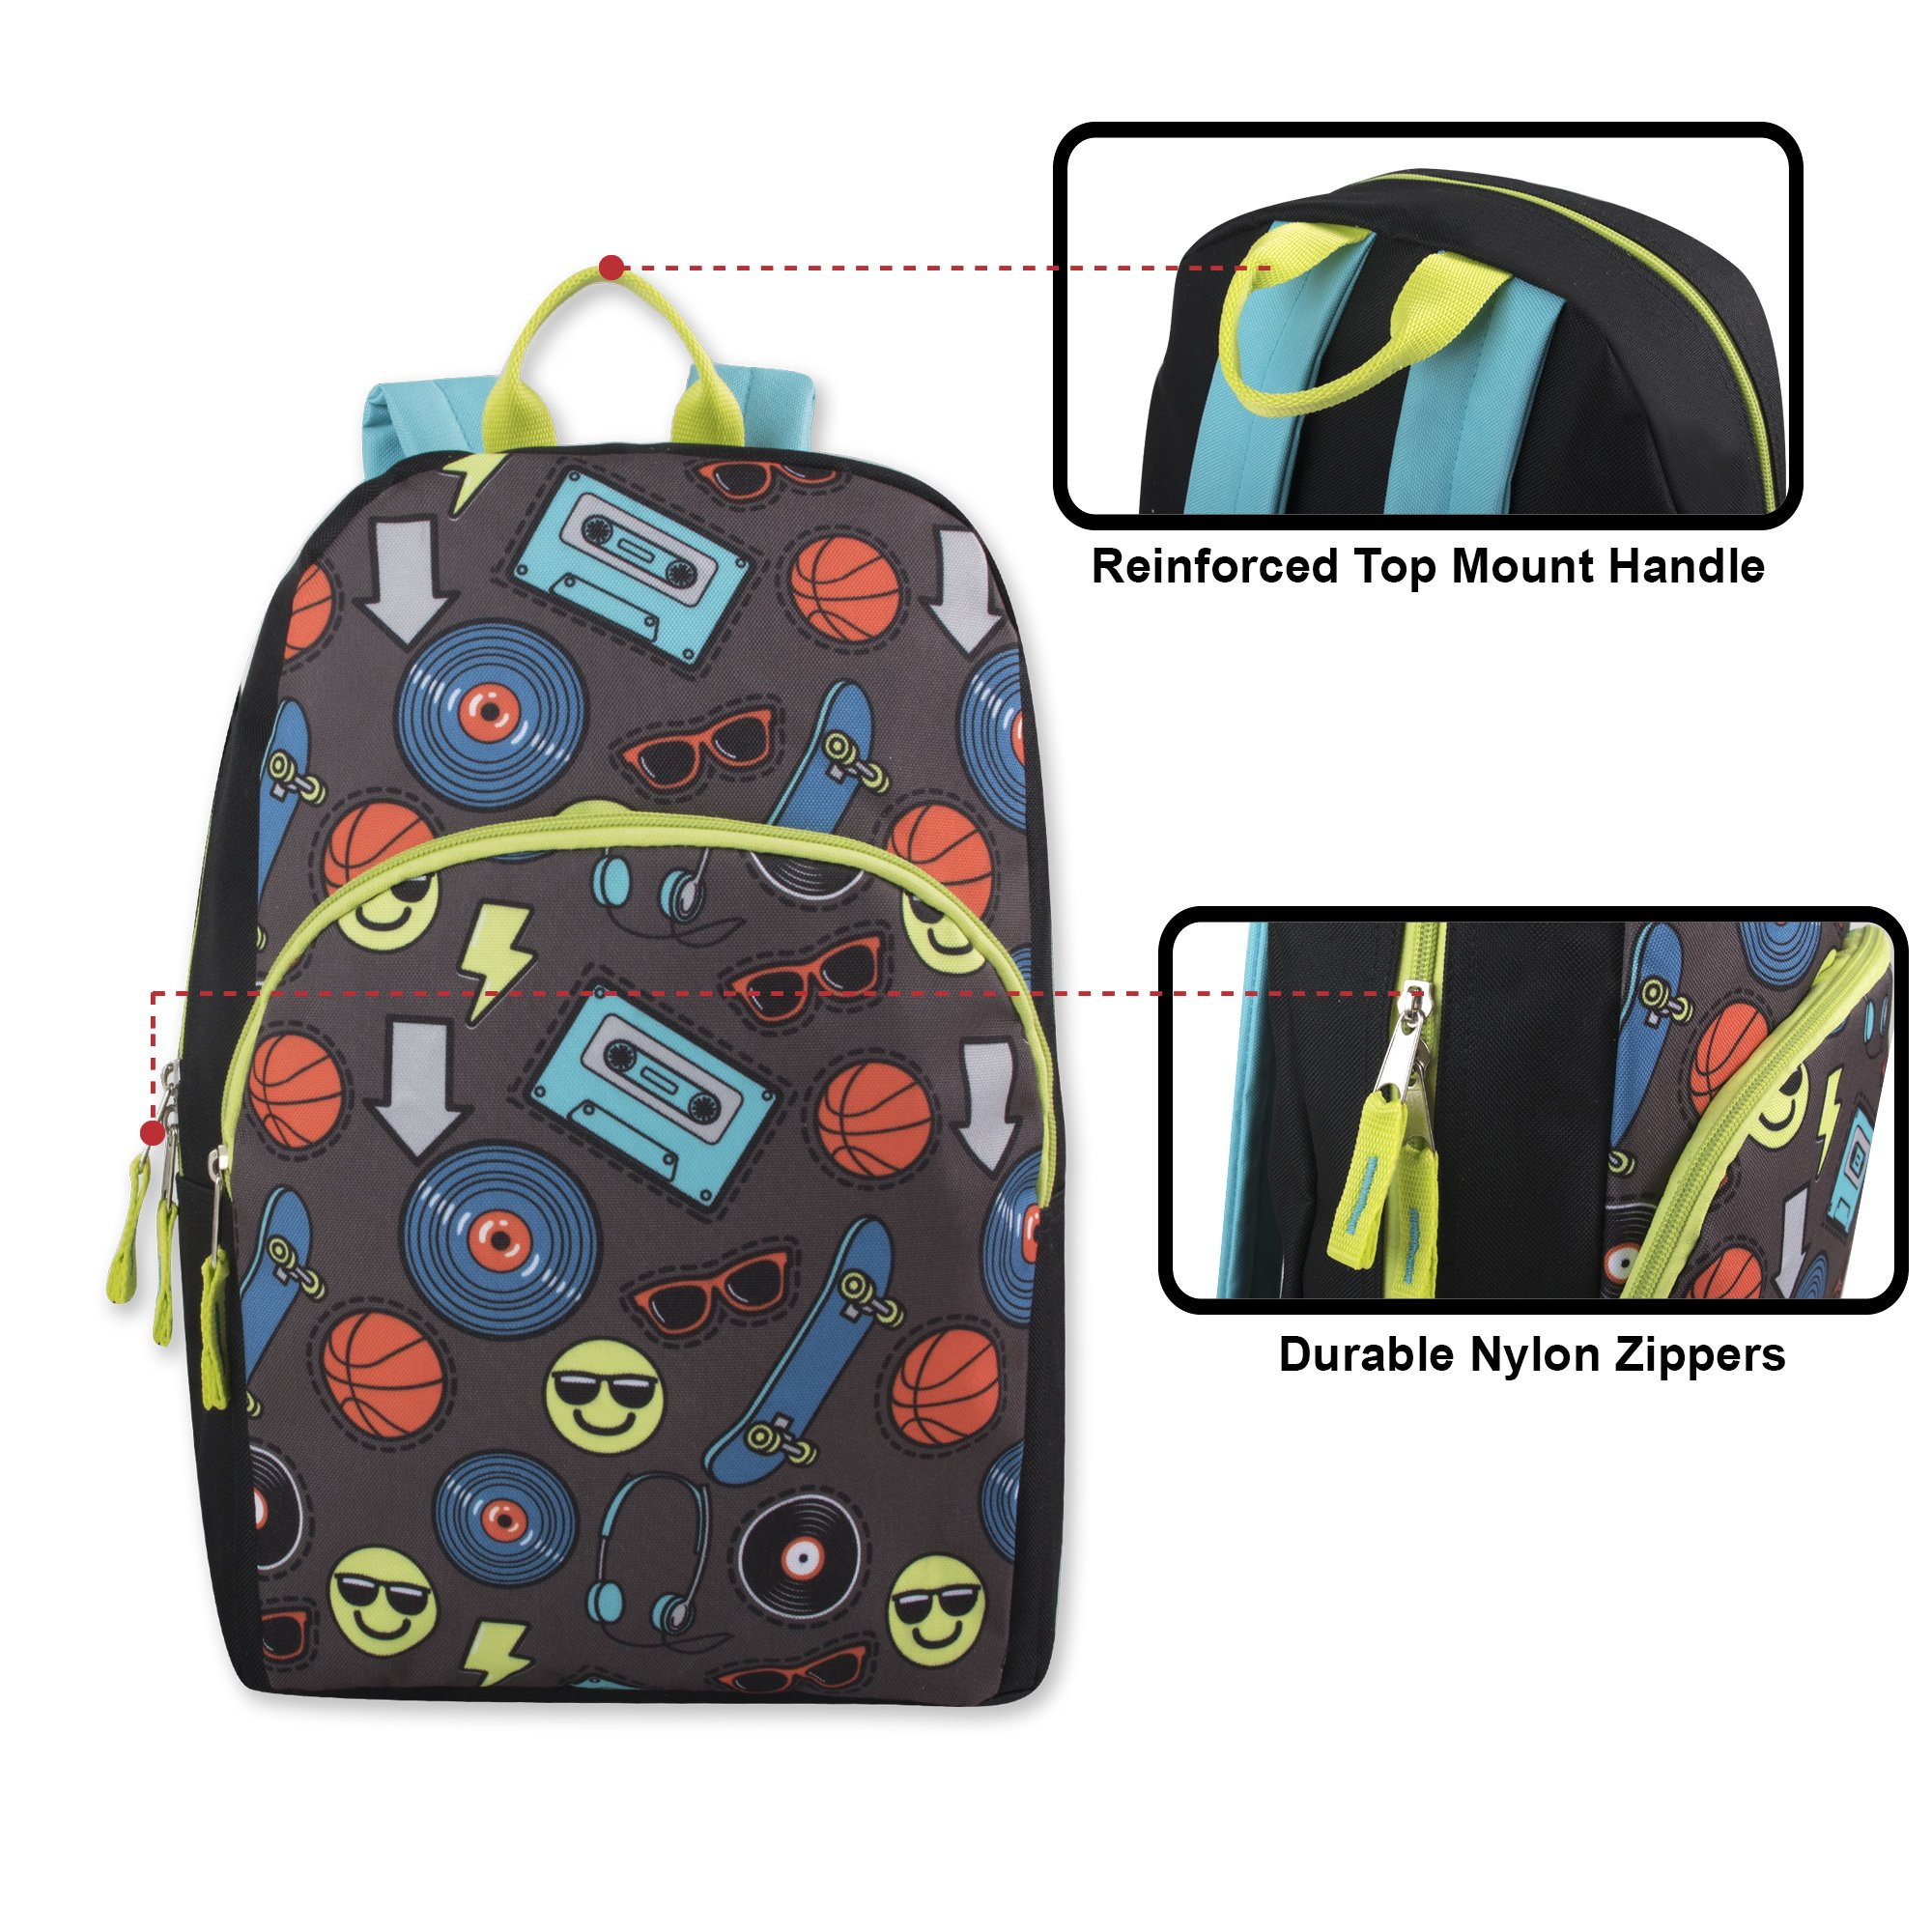 Trail maker Character Backpack (15'') with Fun Fashionable Design for Boys & Girls (Emoji Boy) by Trail maker (Image #2)